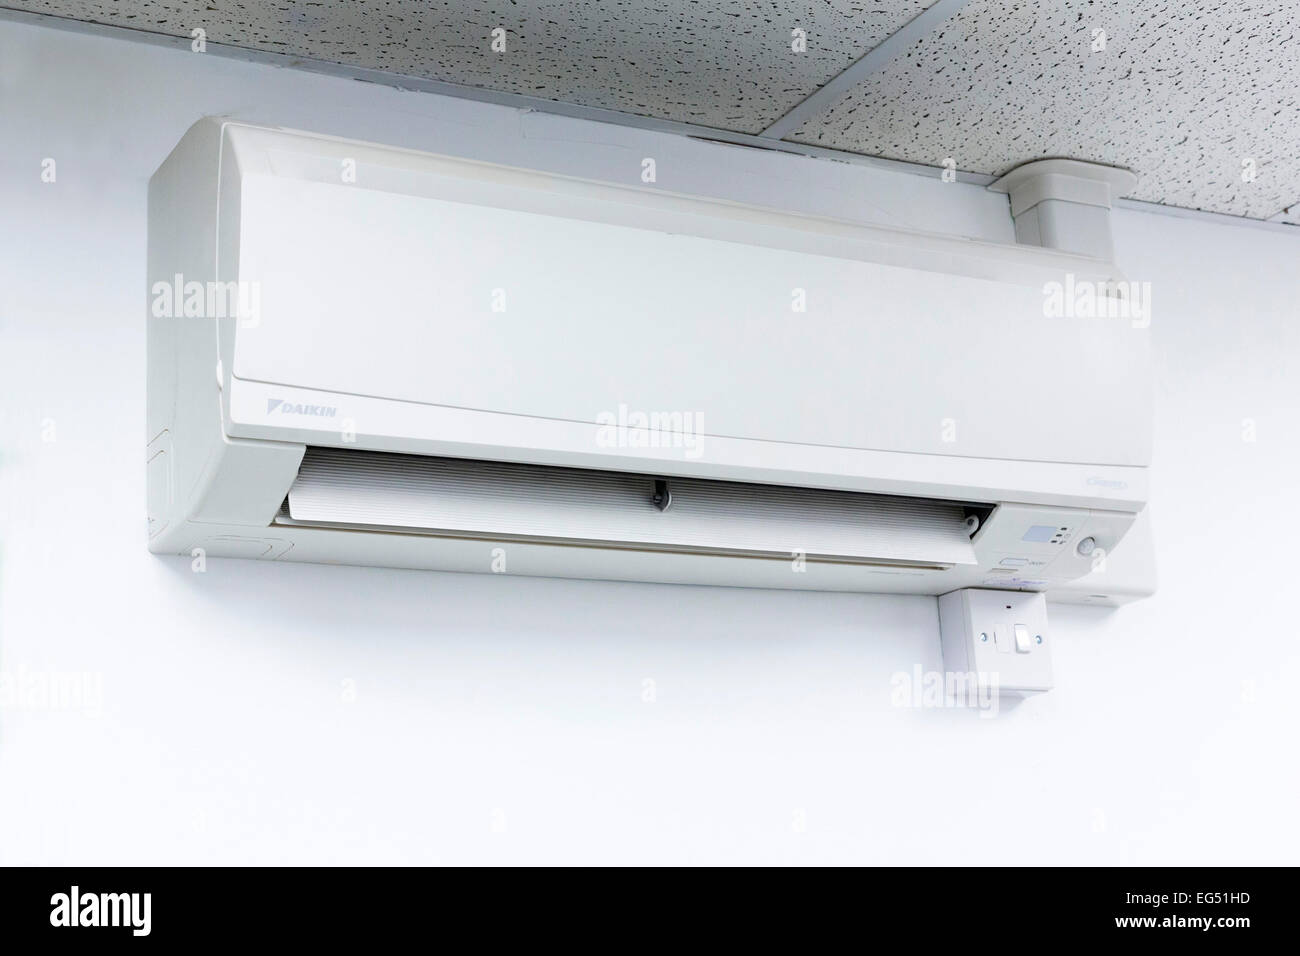 Wall Mounted Air Conditioning Unit High Resolution Stock Photography And Images Alamy